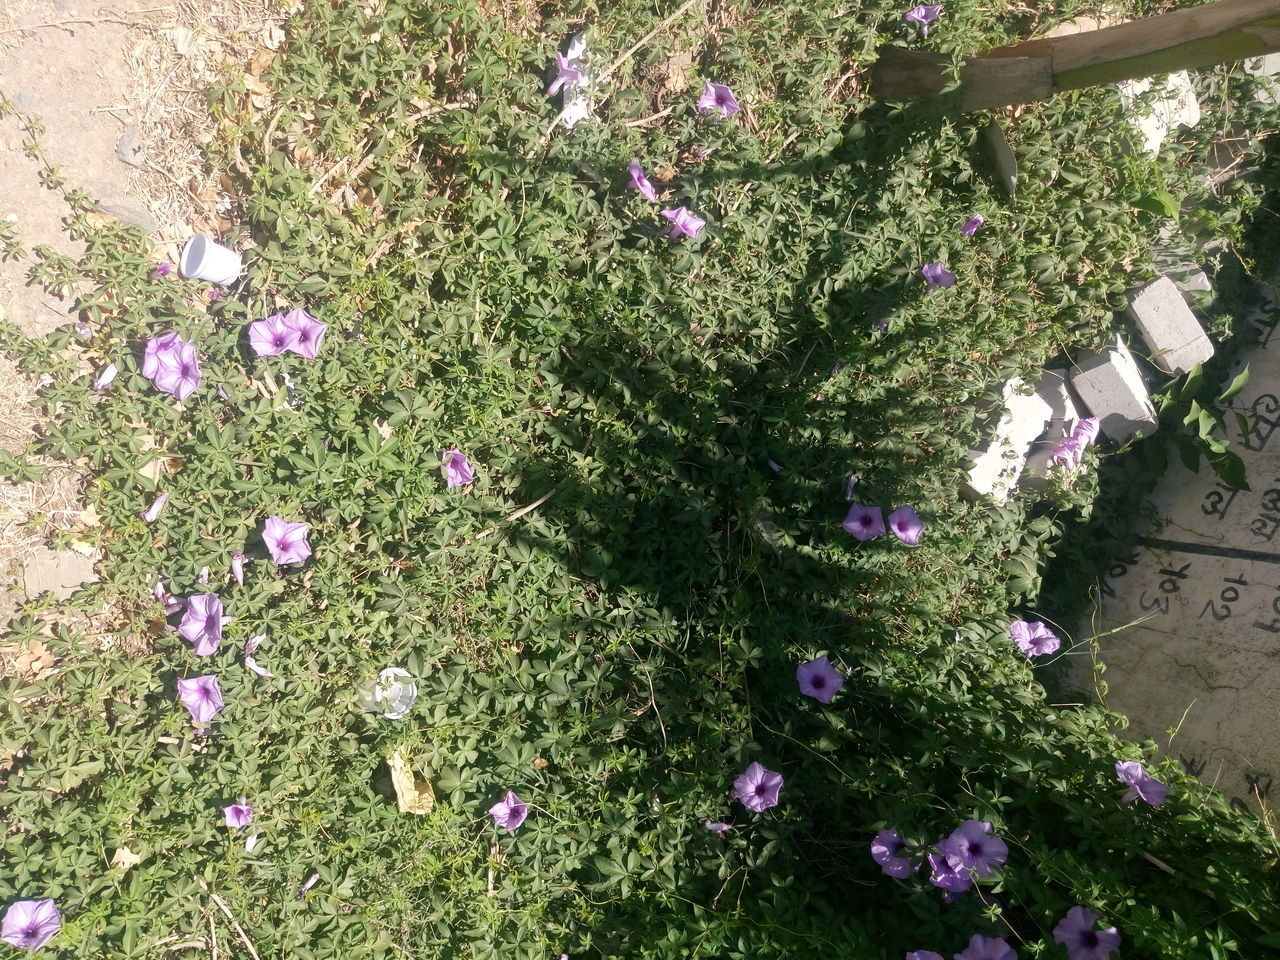 flower, growth, plant, nature, high angle view, day, fragility, beauty in nature, outdoors, no people, purple, freshness, flower head